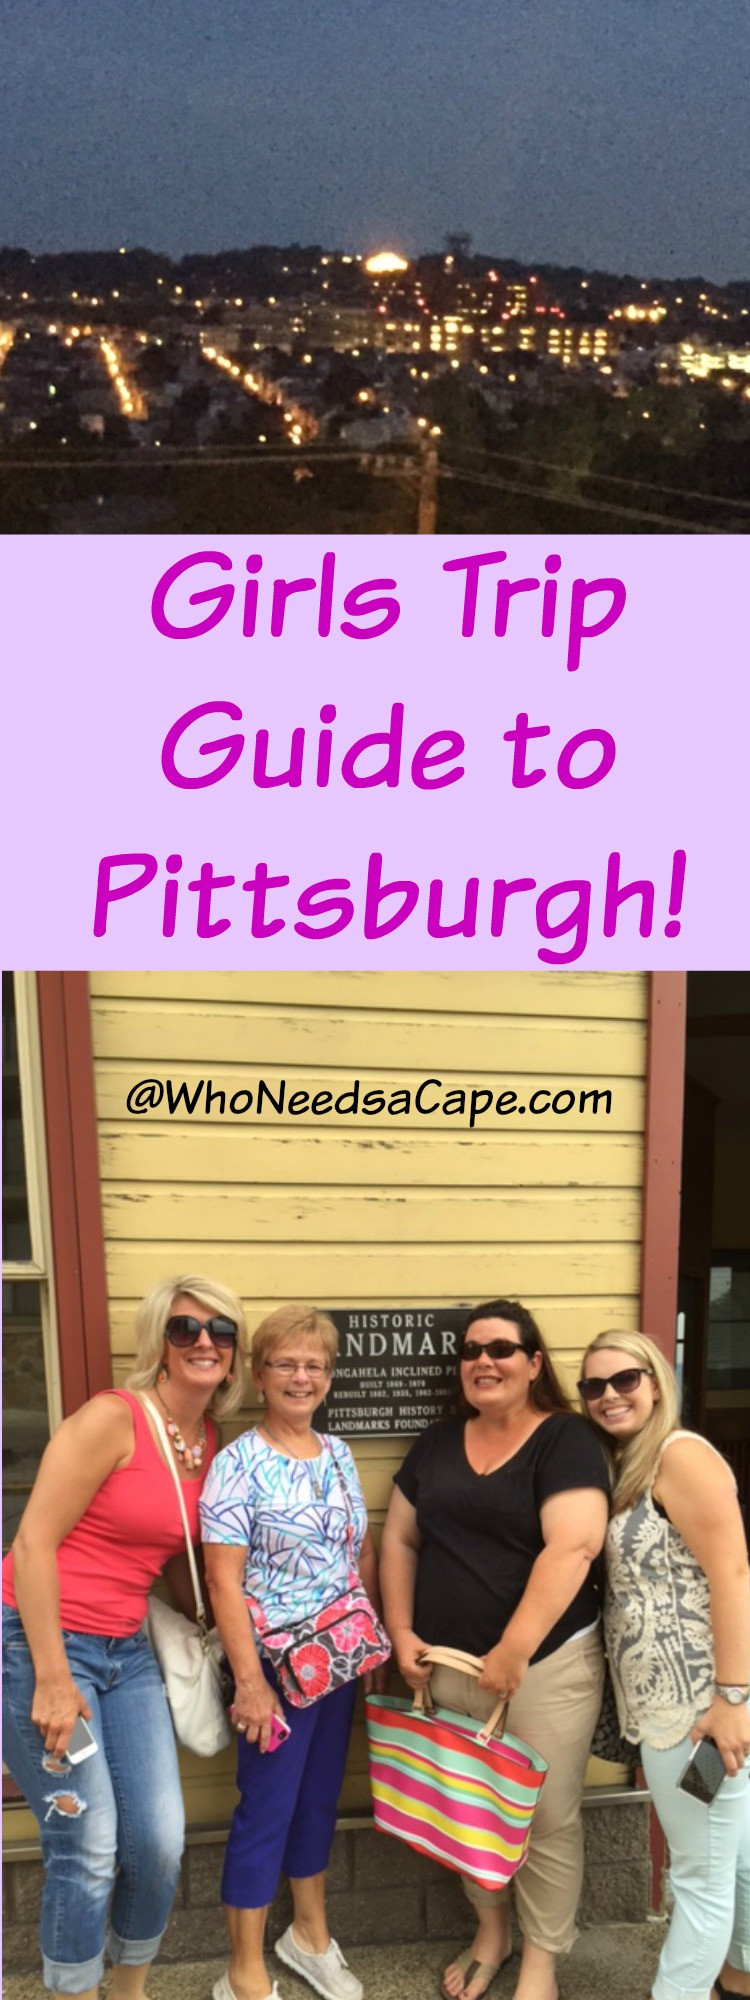 Going on a Girls Trip Get the Girls Trip Guide to Pittsburgh - some great tips and a round up of FUN! Who Needs a Cape